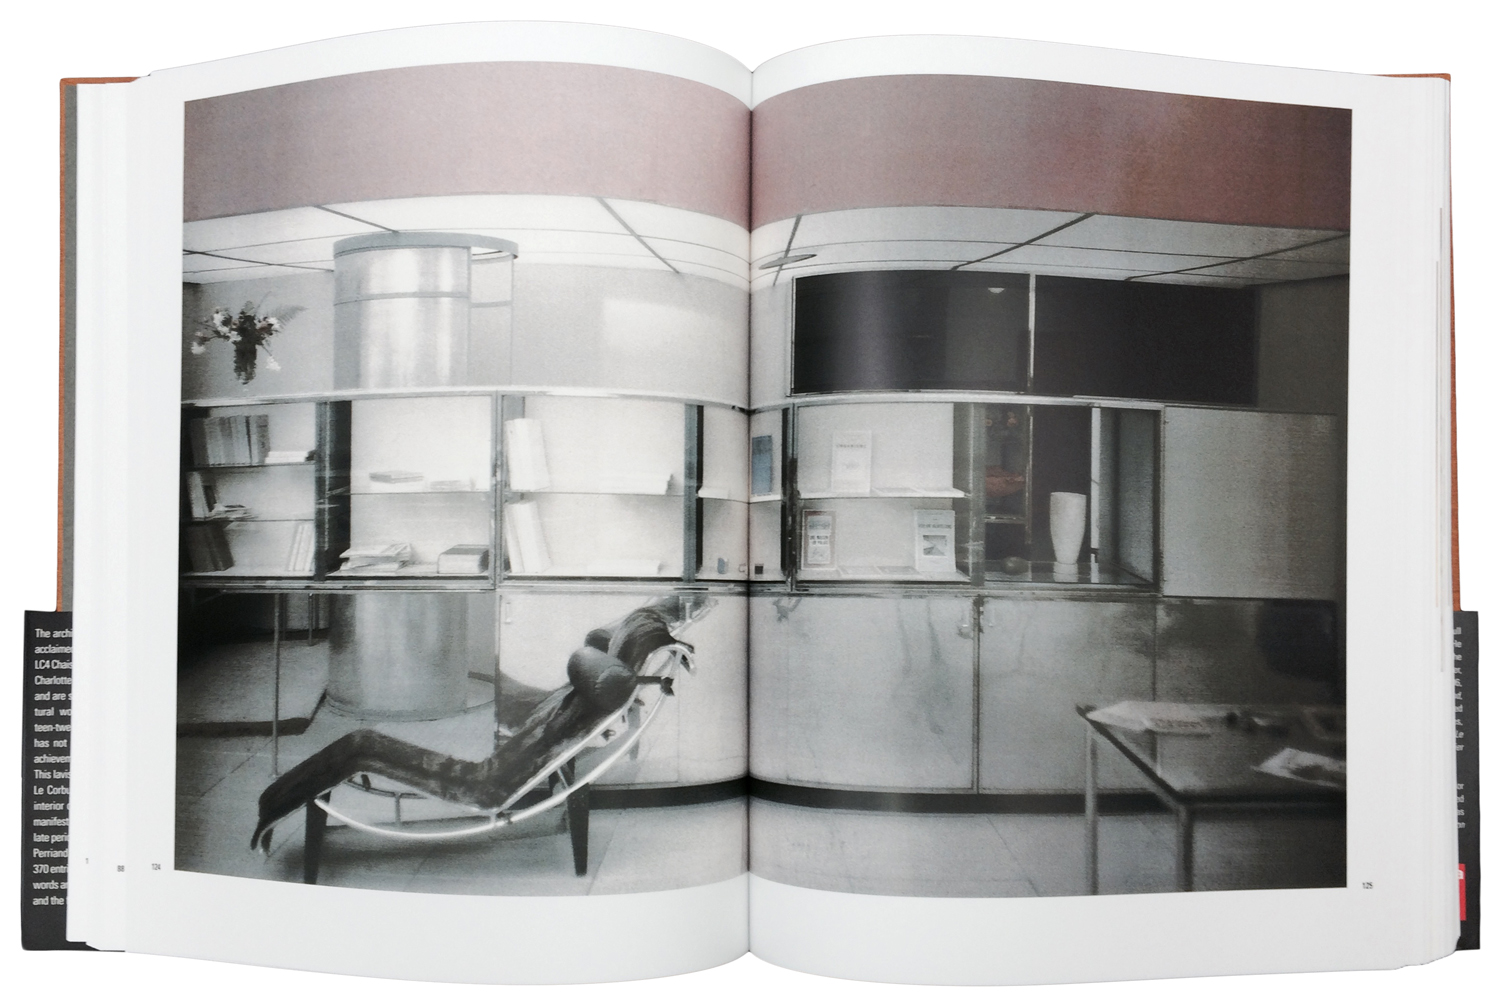 Image 3 Of 5 For Le Corbusier Furniture And Interiors 1905 1965